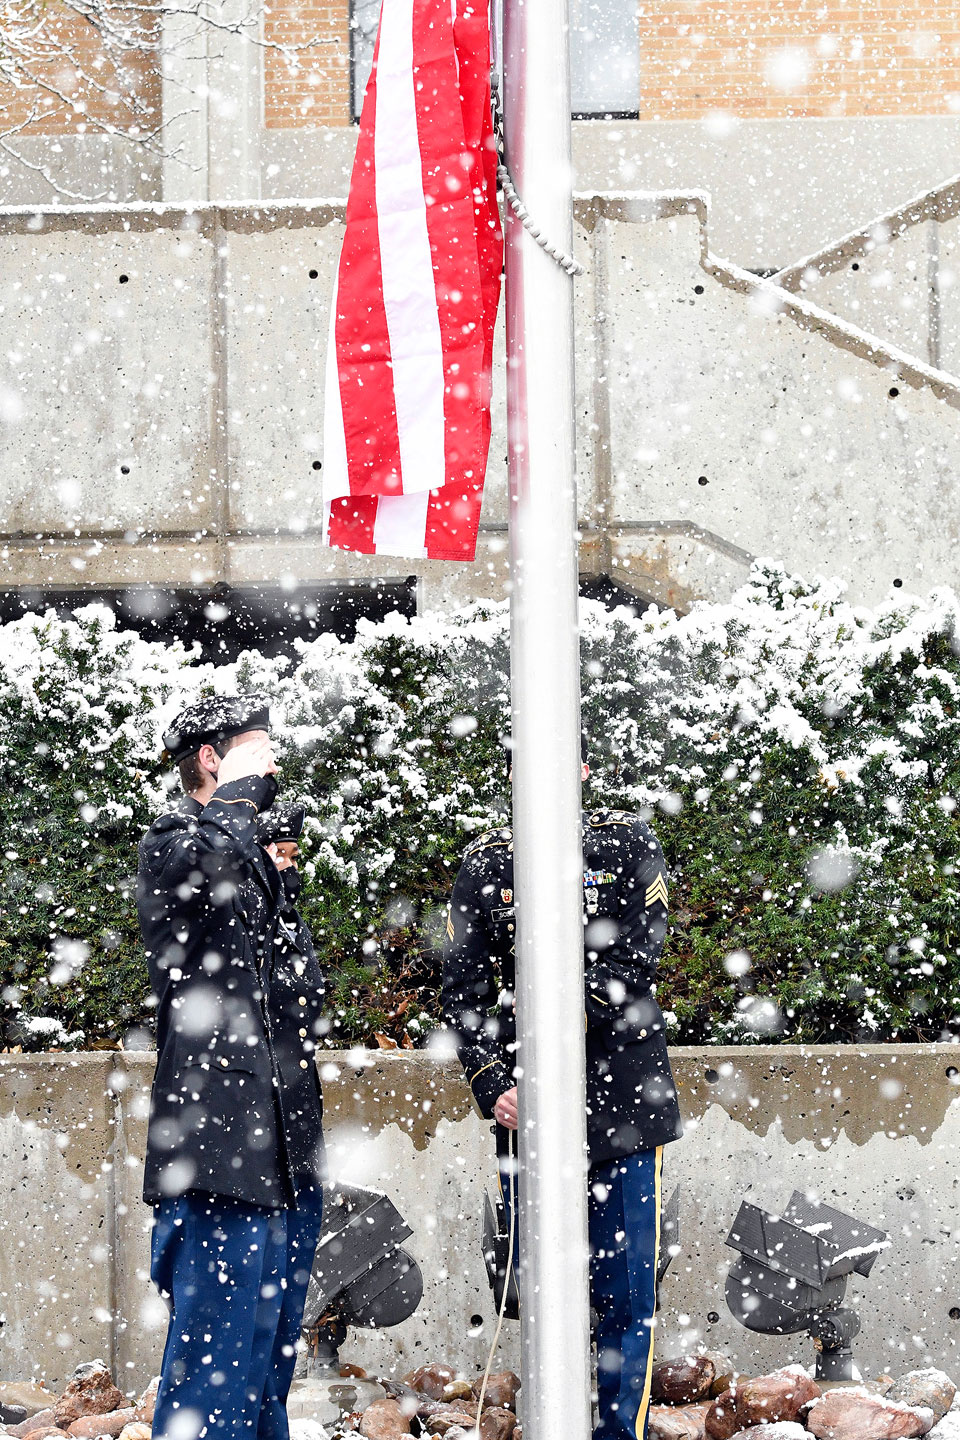 Raising a new American flag in snowy weather